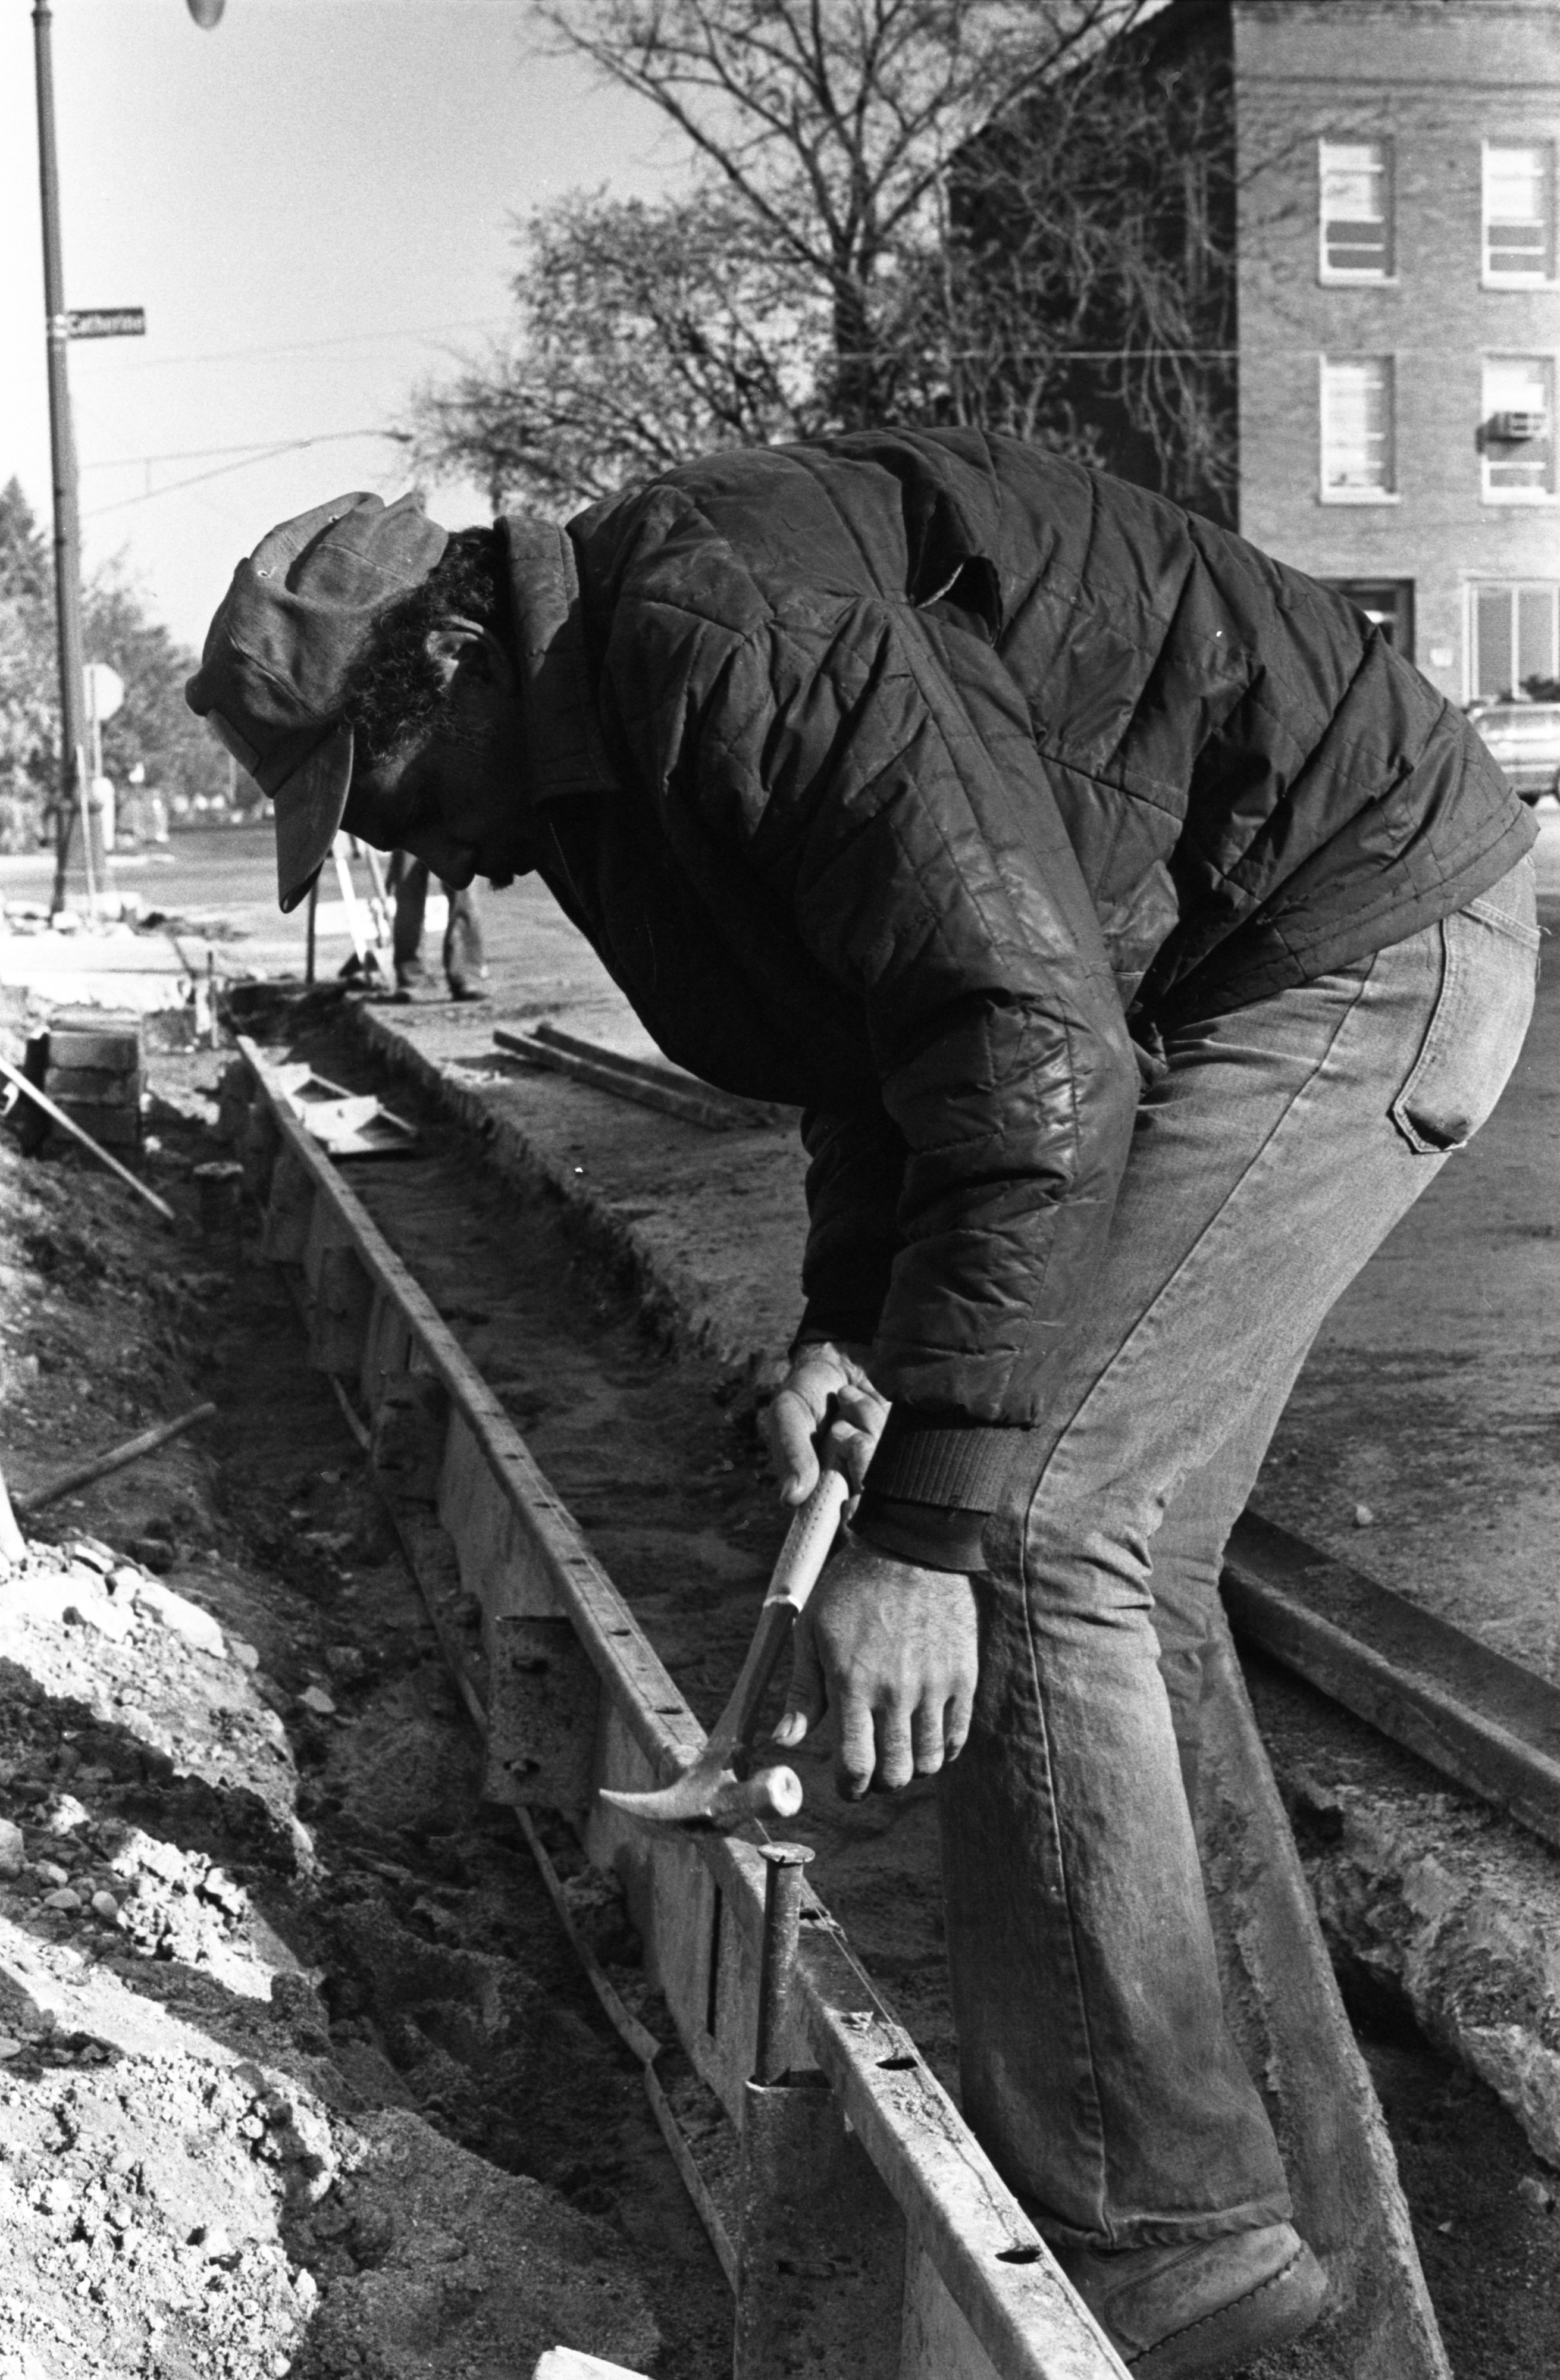 Calvert Brothers Employee Works On N. Fourth Avenue, October 1977 image